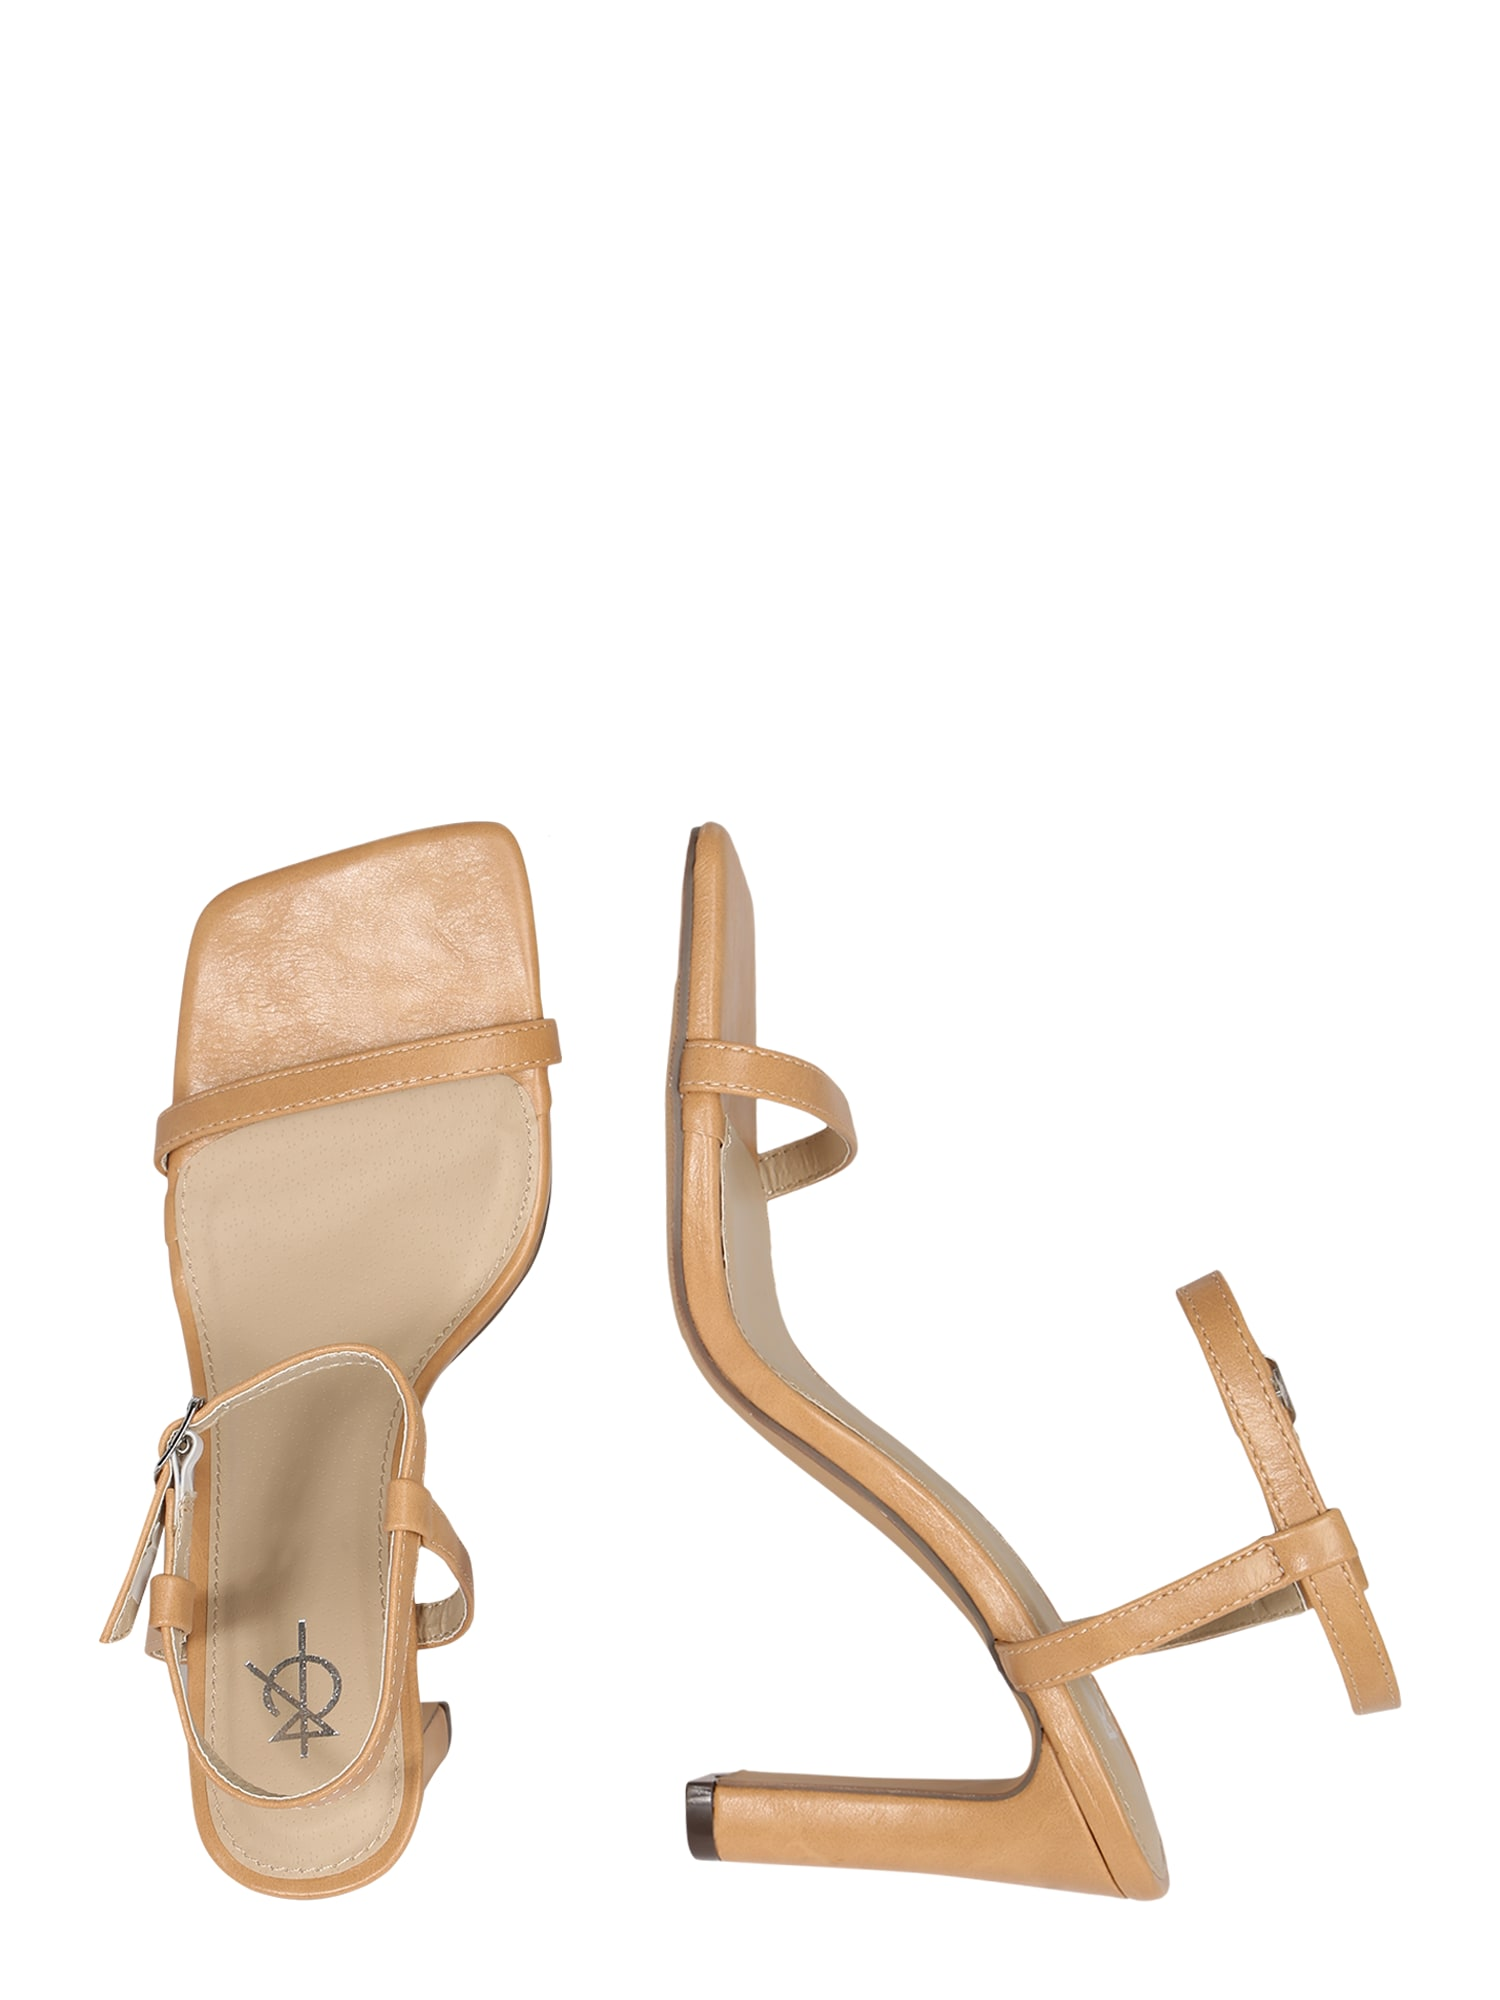 4th & Reckless Remsandal 'Megan'  nude